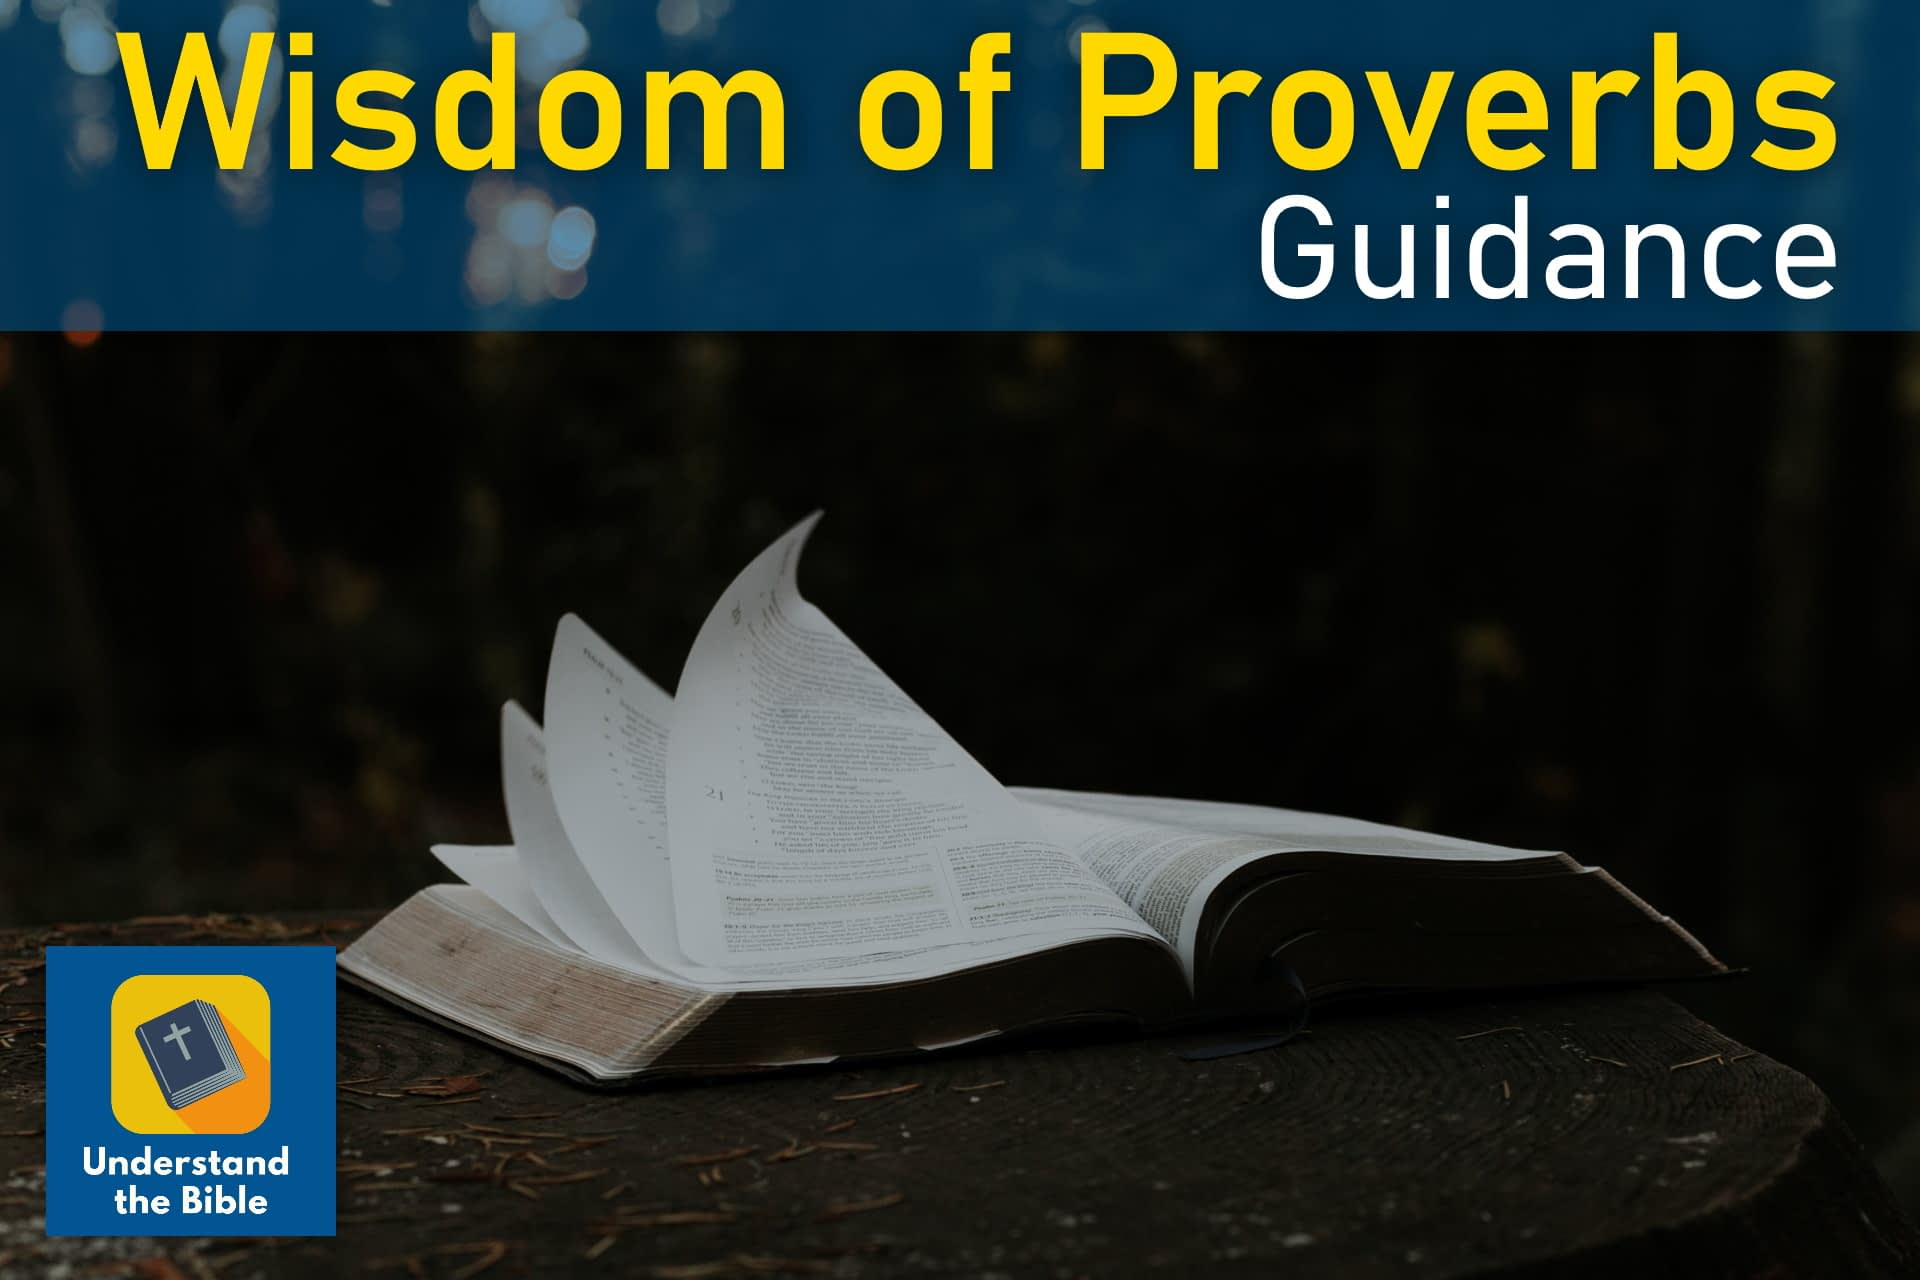 Wisdom of Proverbs: Guidance